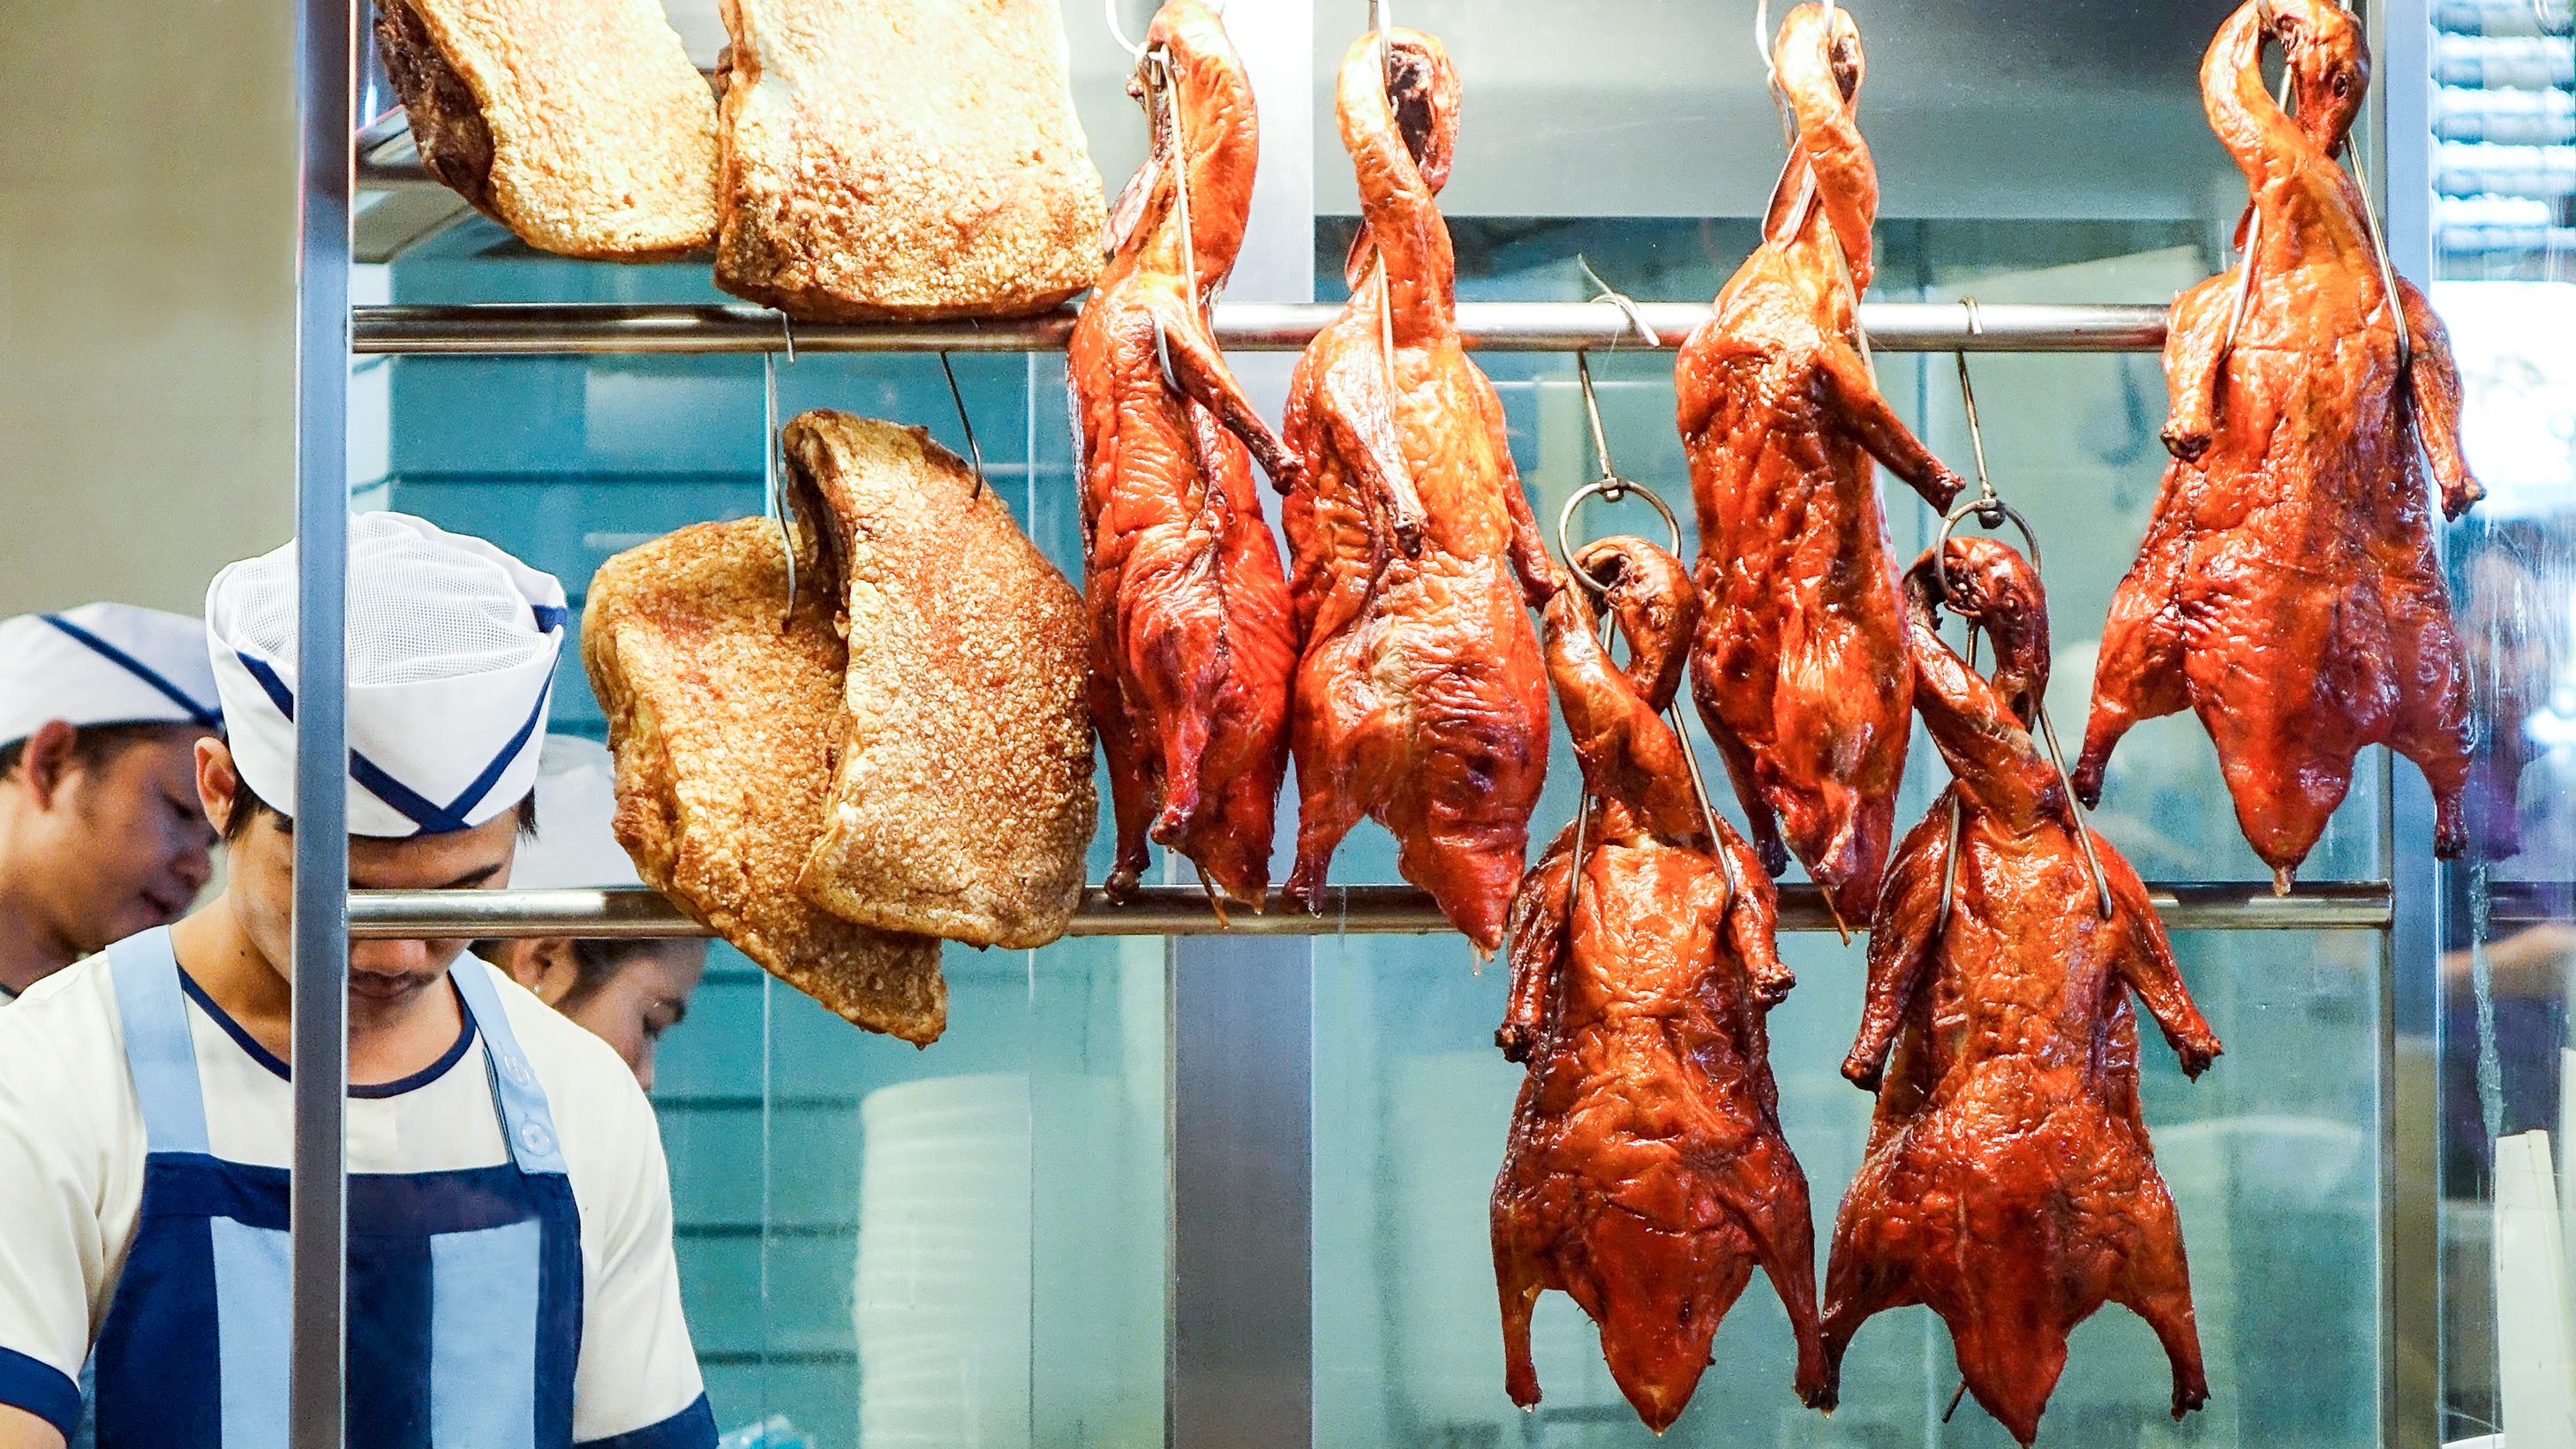 Generic roast duck hanging from the window of a Chinese restaurant